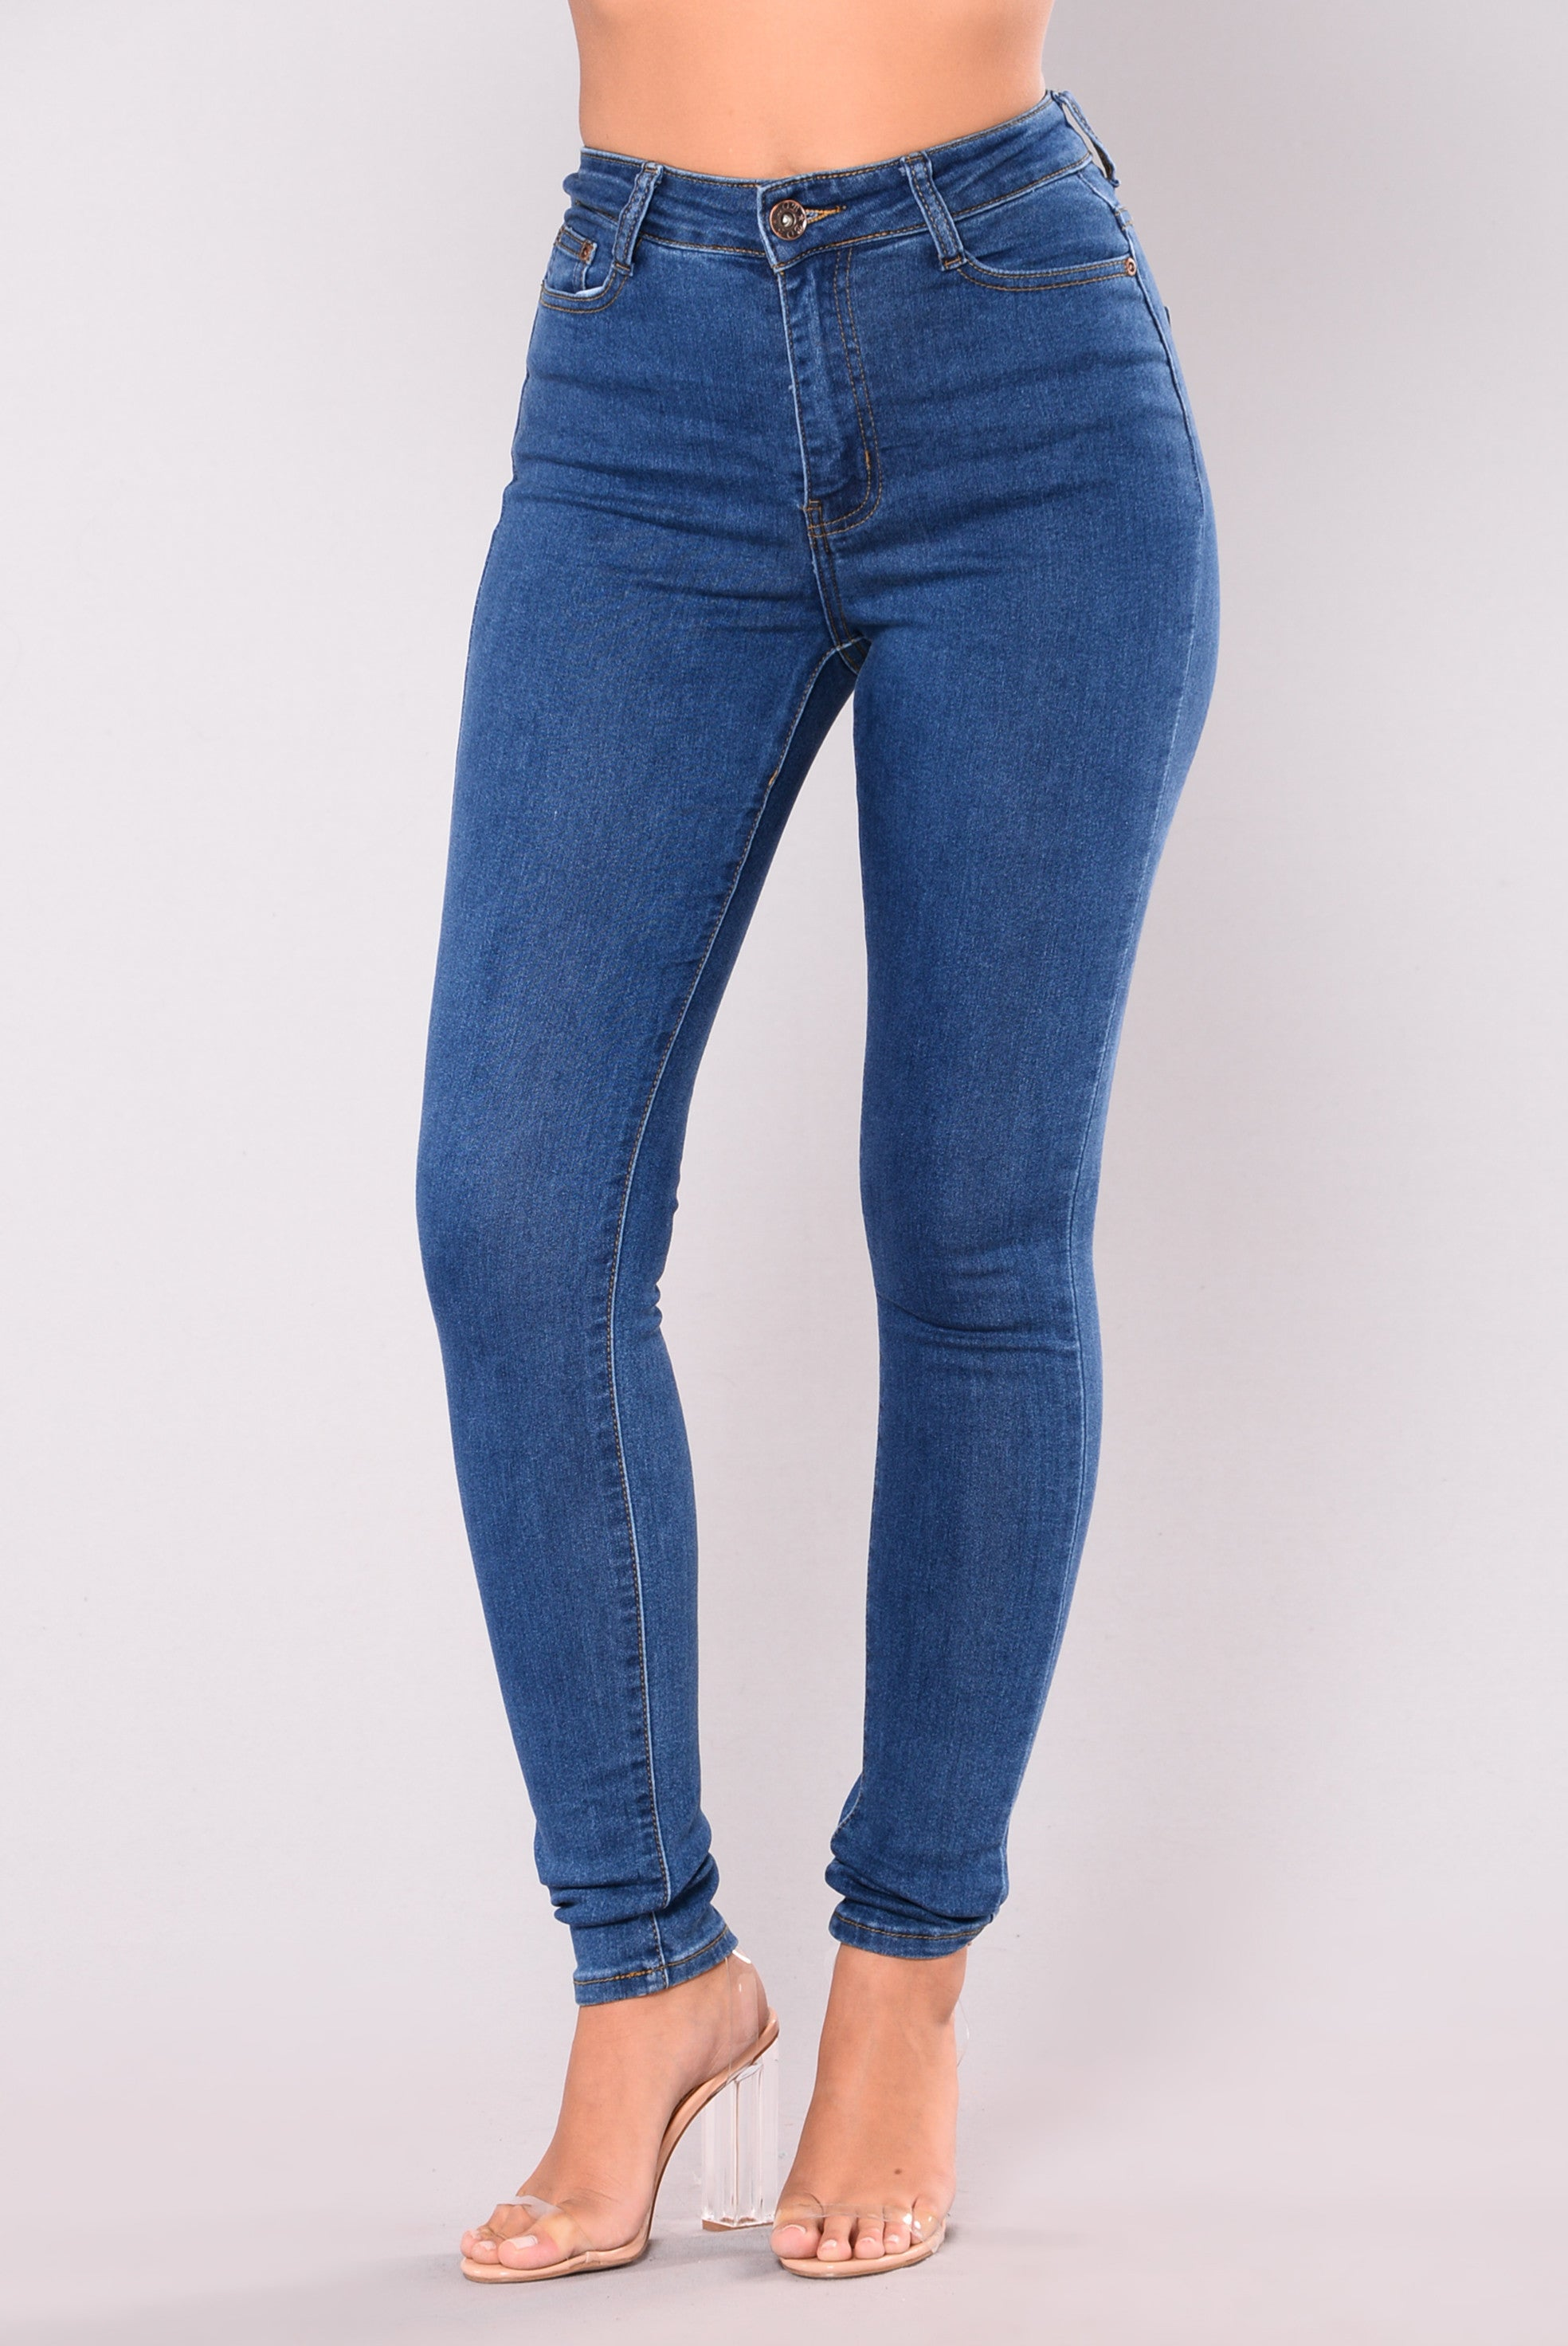 Find great deals on eBay for mens blue skinny jeans. Shop with confidence.